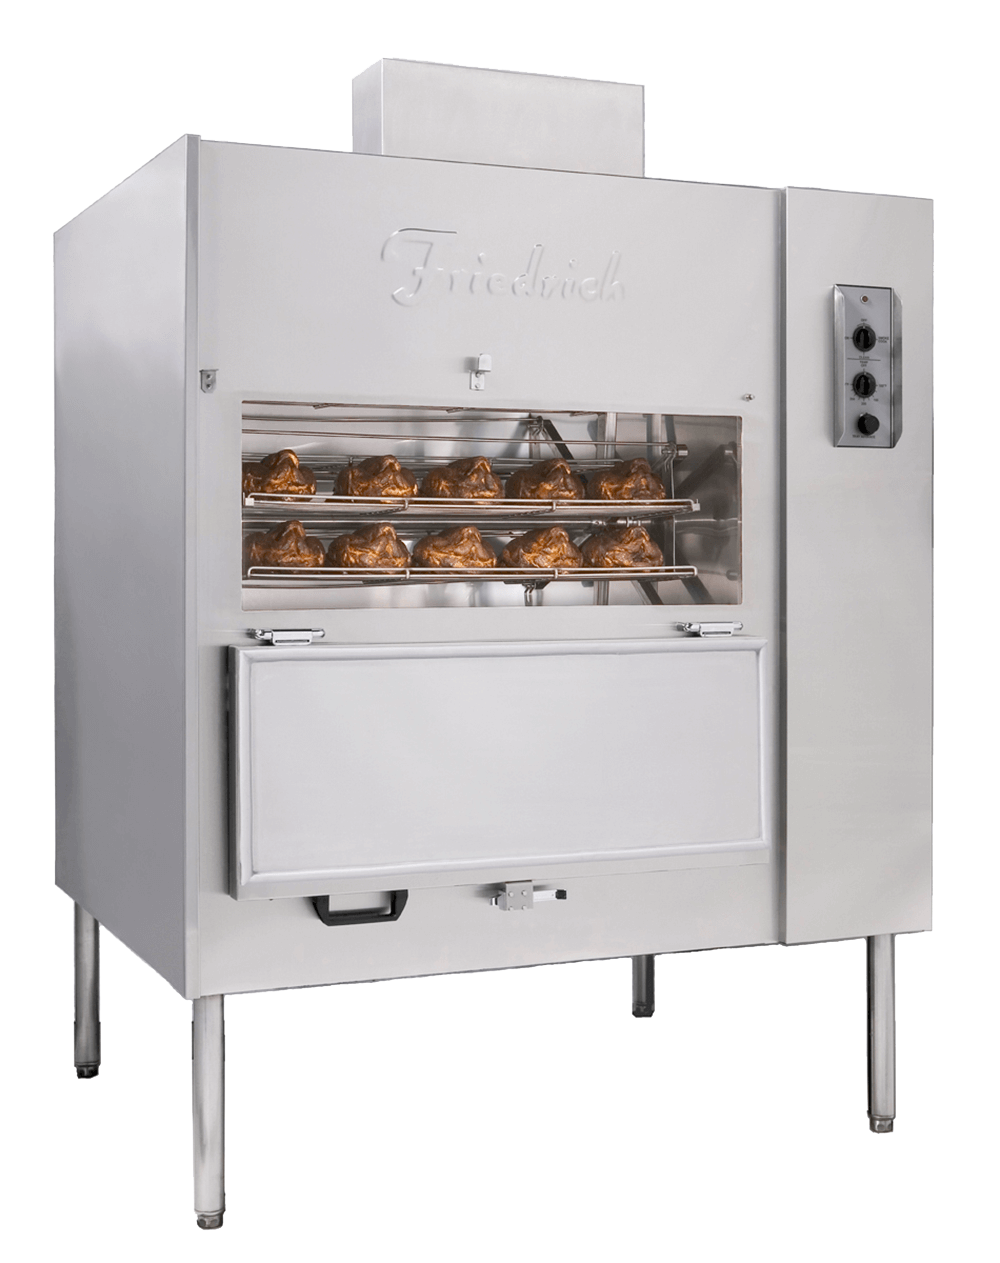 Friedrich Roasters Smokers Fmp 400 Freestandingunit Open